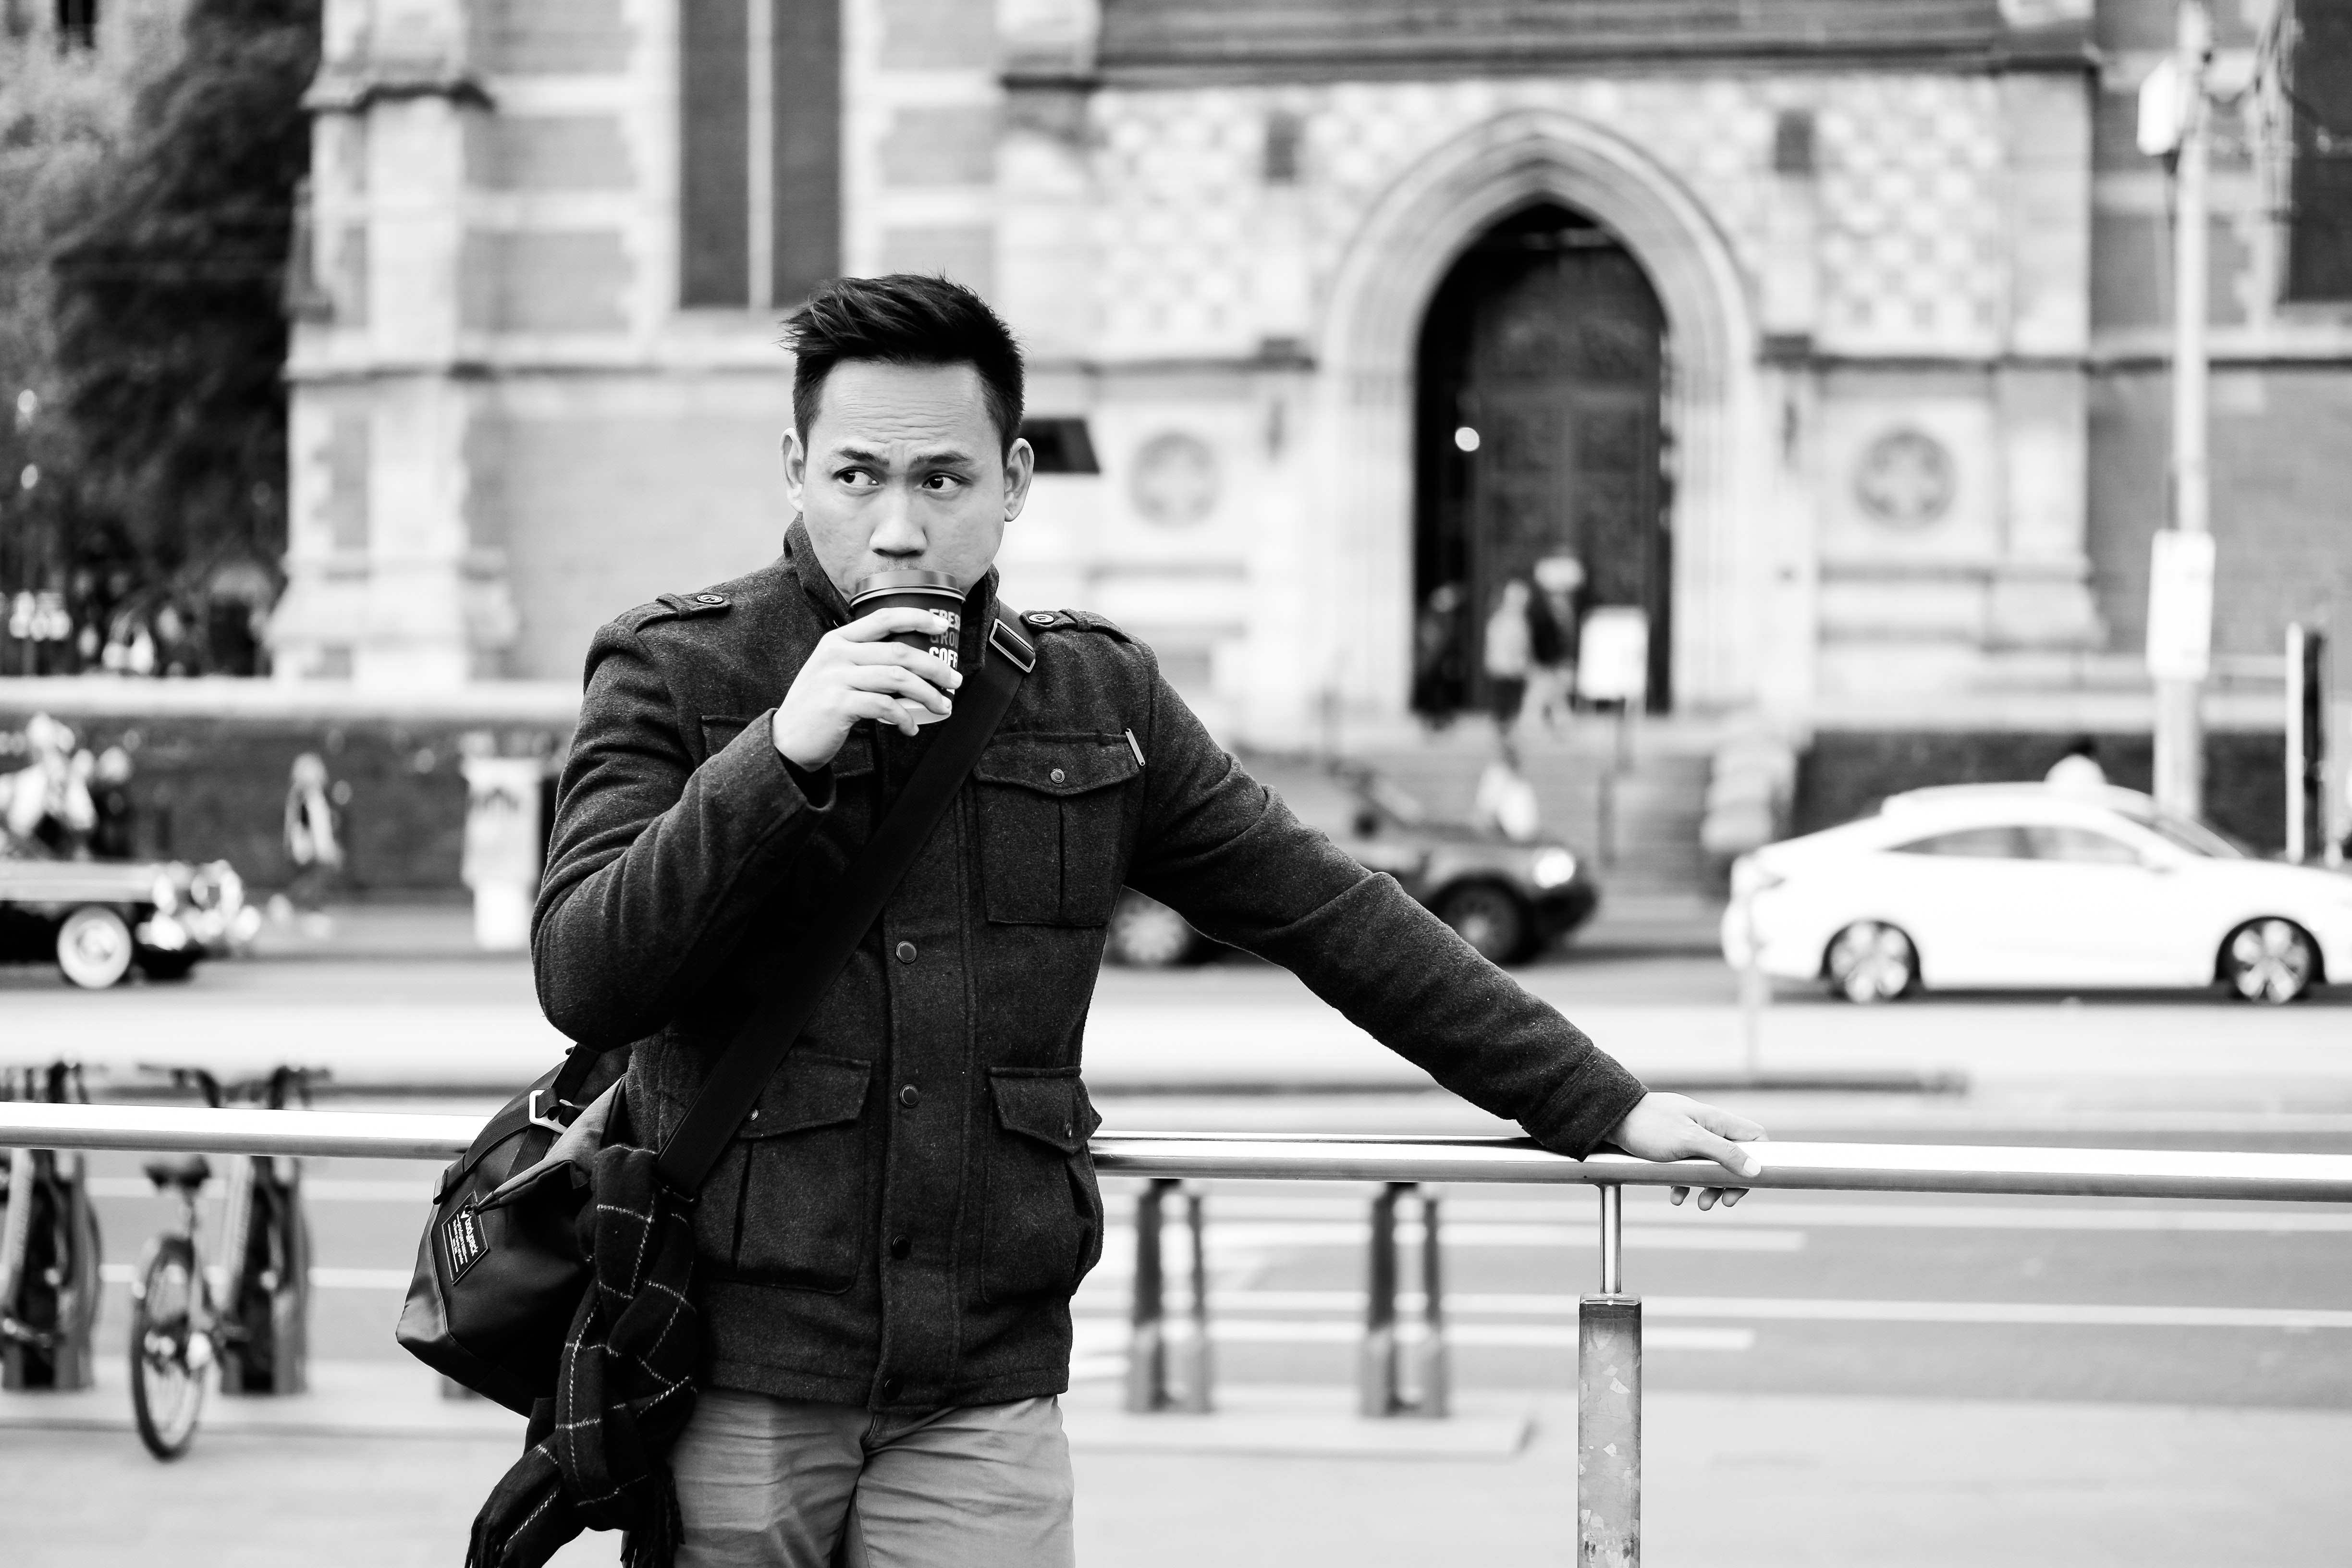 grayscale photo of man drinking on cup while holding on handrail beside road during daytime